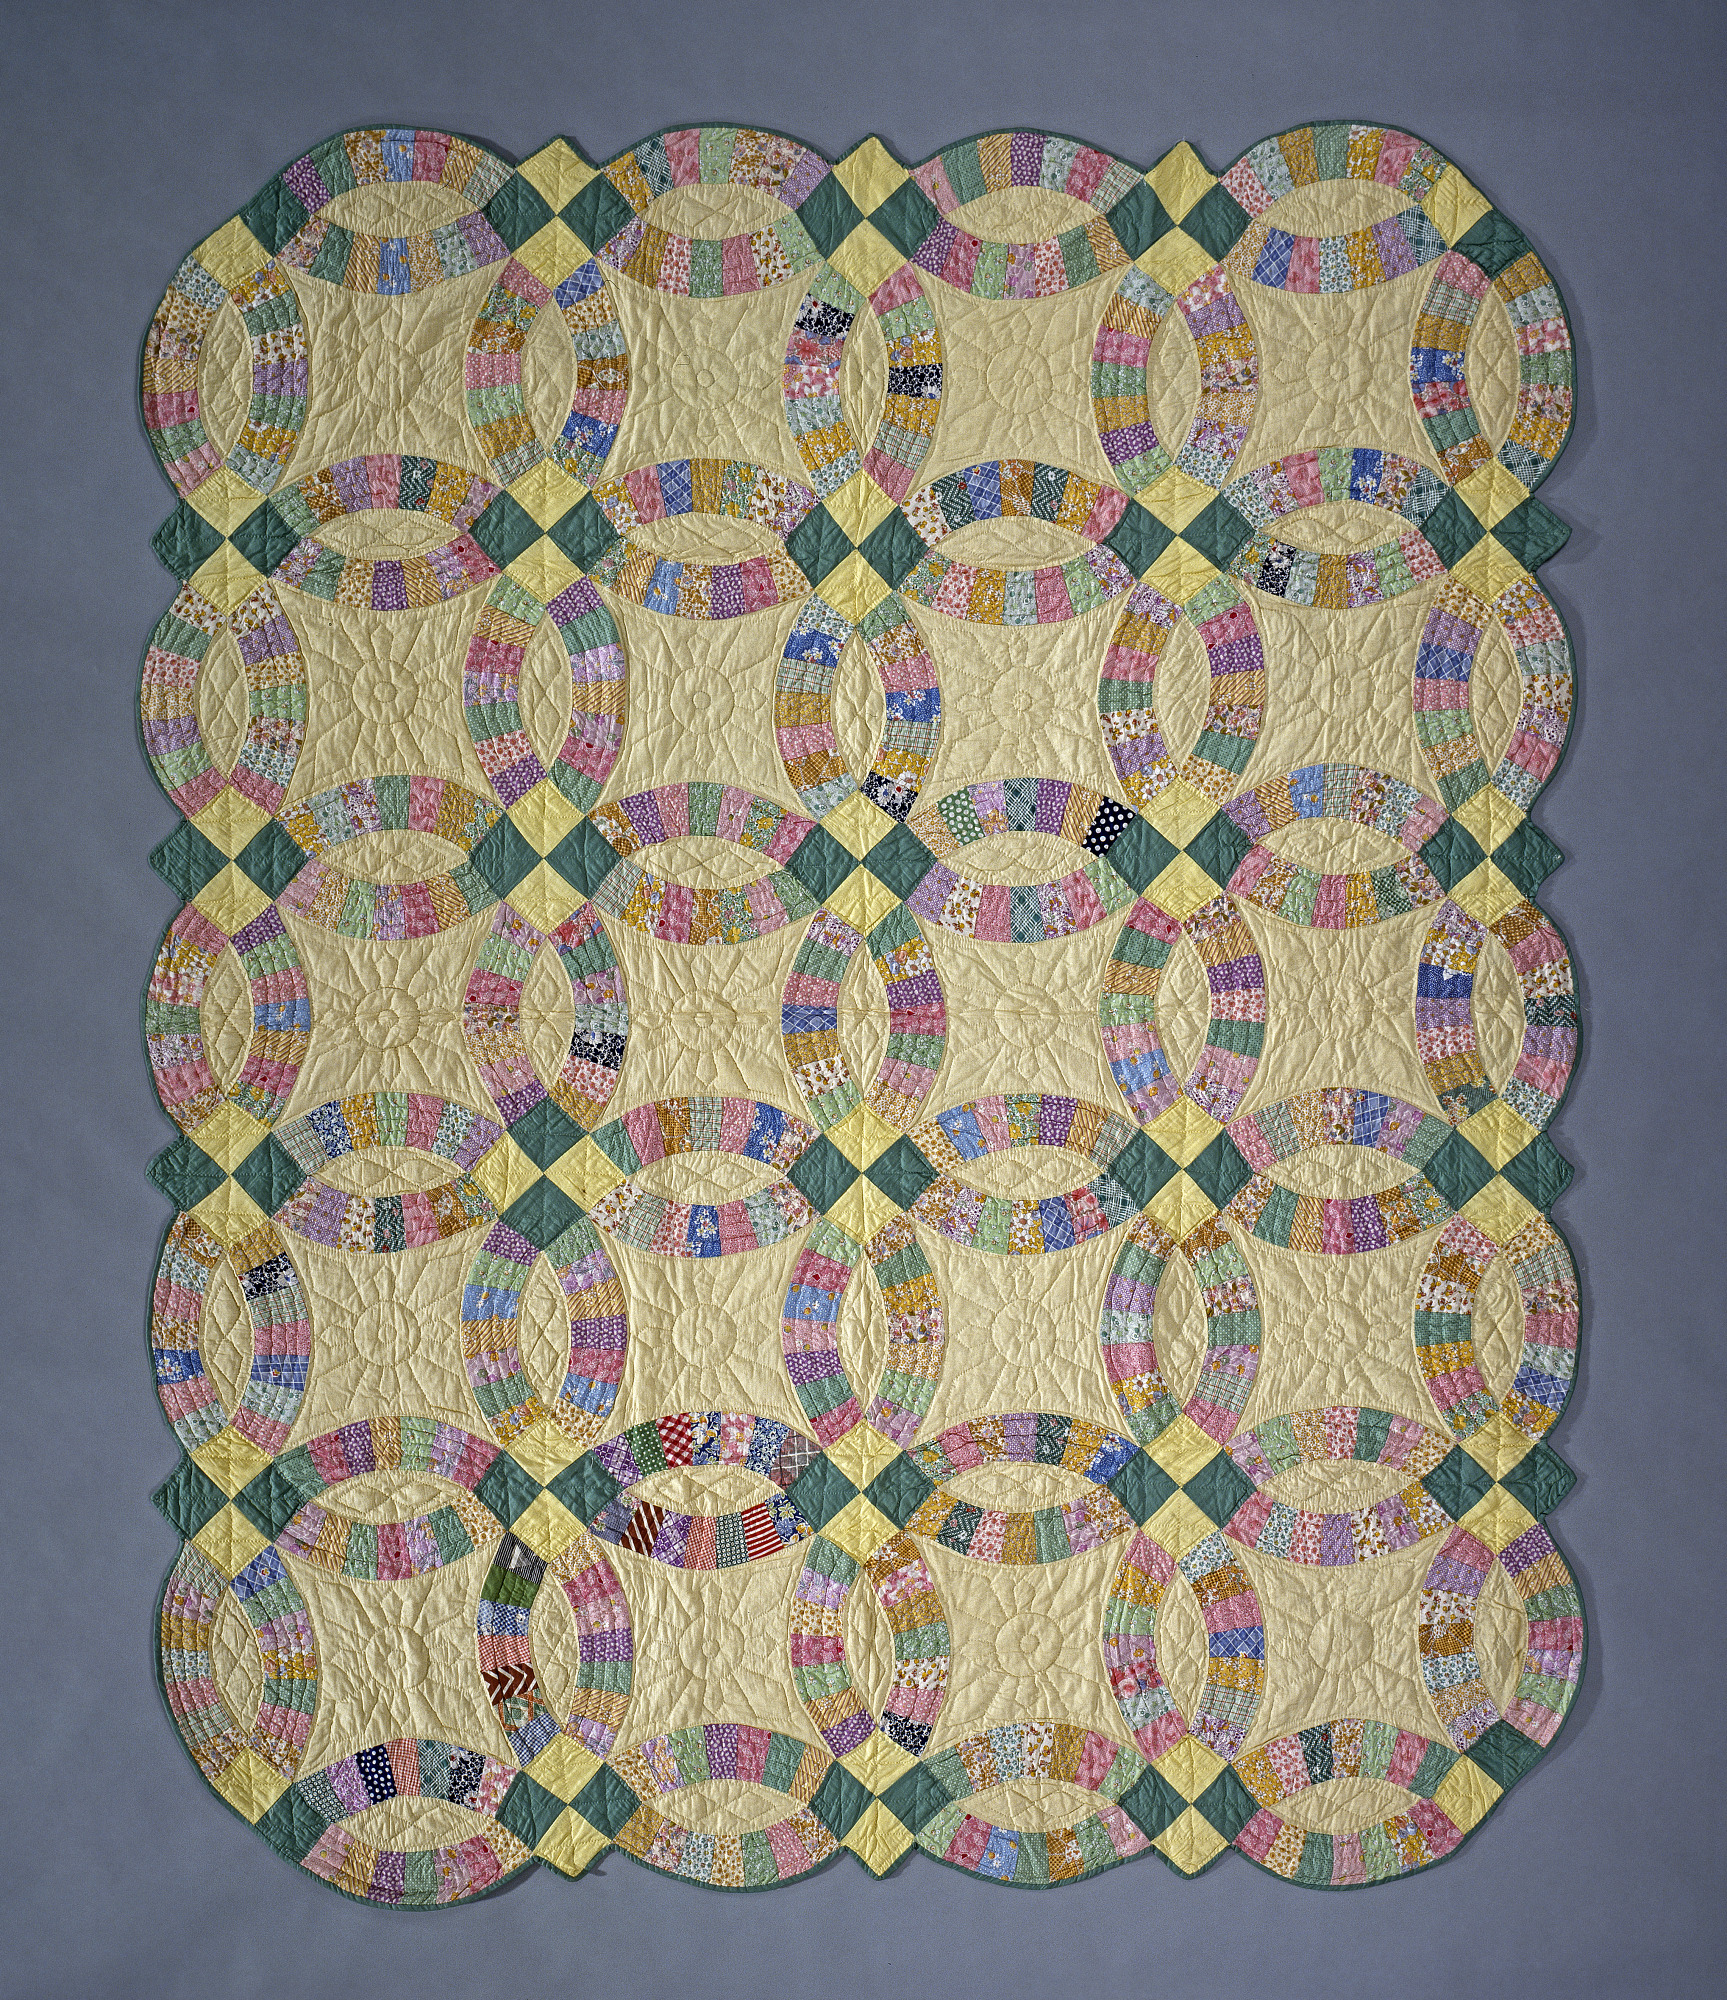 1930 Double Wedding Ring Quilt National Museum Of American History